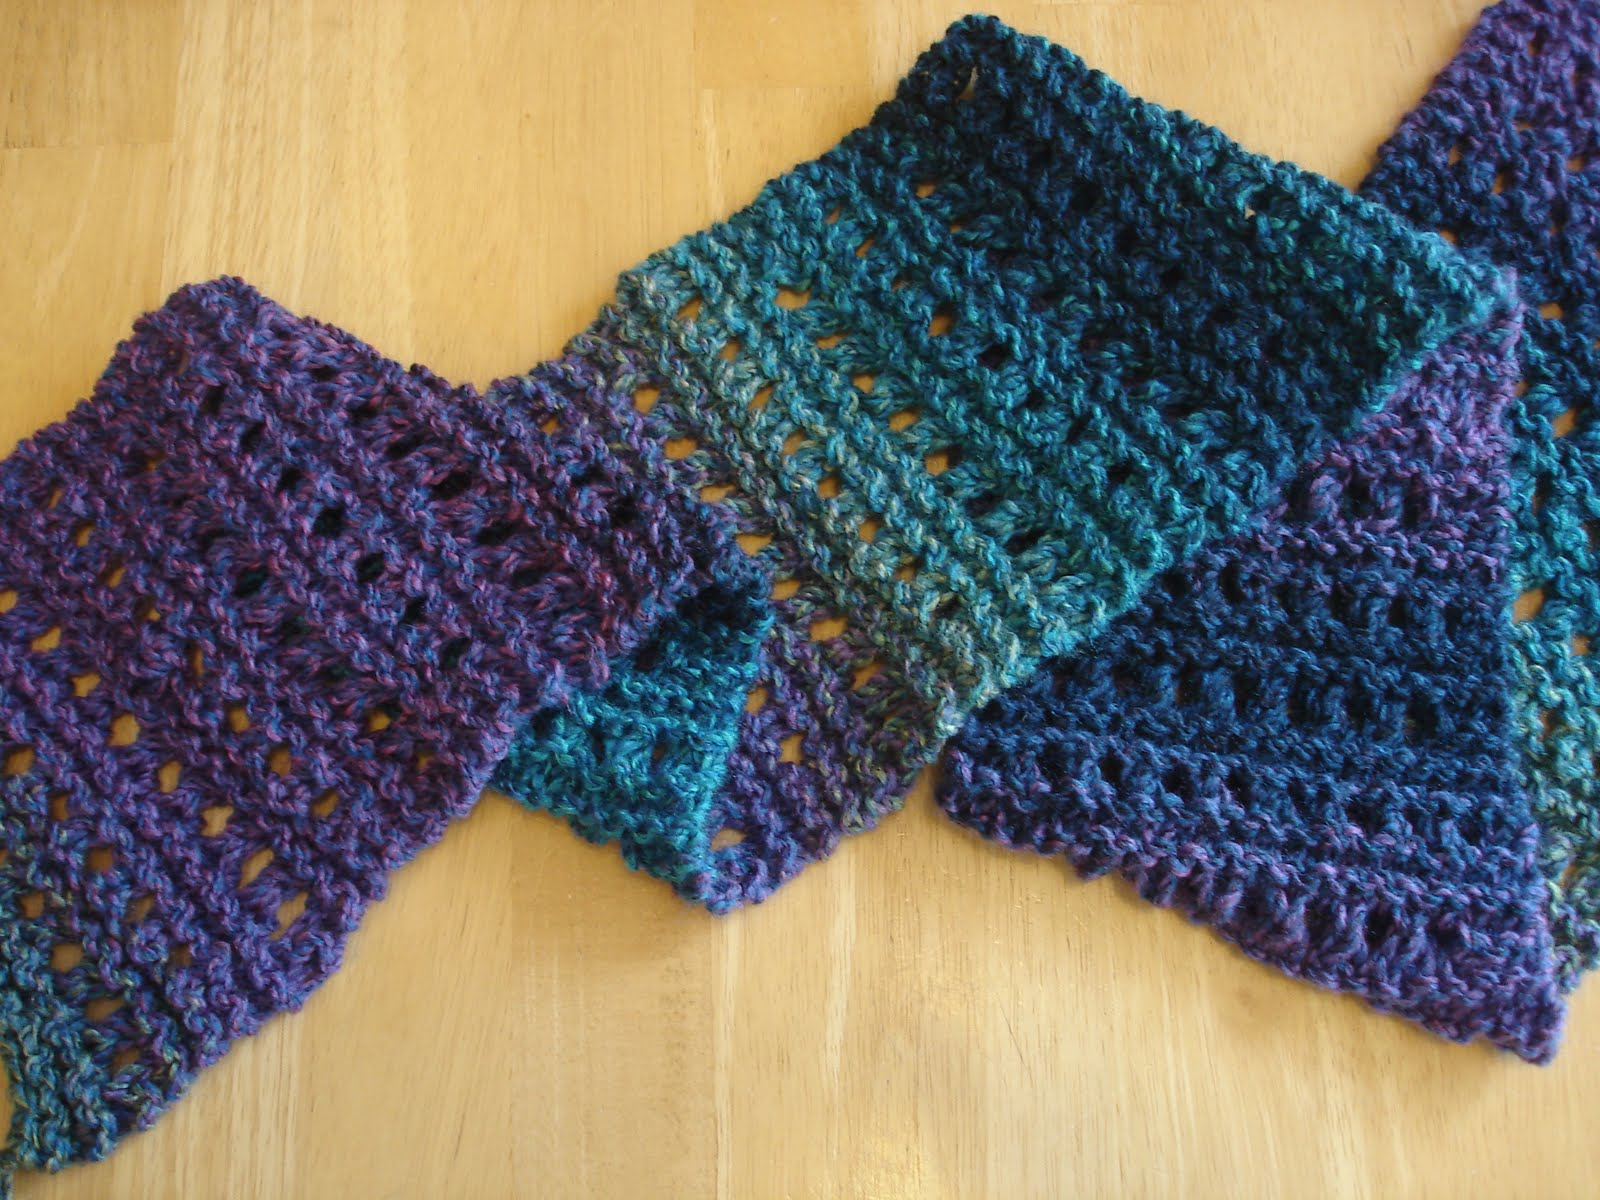 Easy Knitting Stitches For A Scarf : Fiber Flux: Free Knitting Pattern: Tweedy Eyelet Scarf!